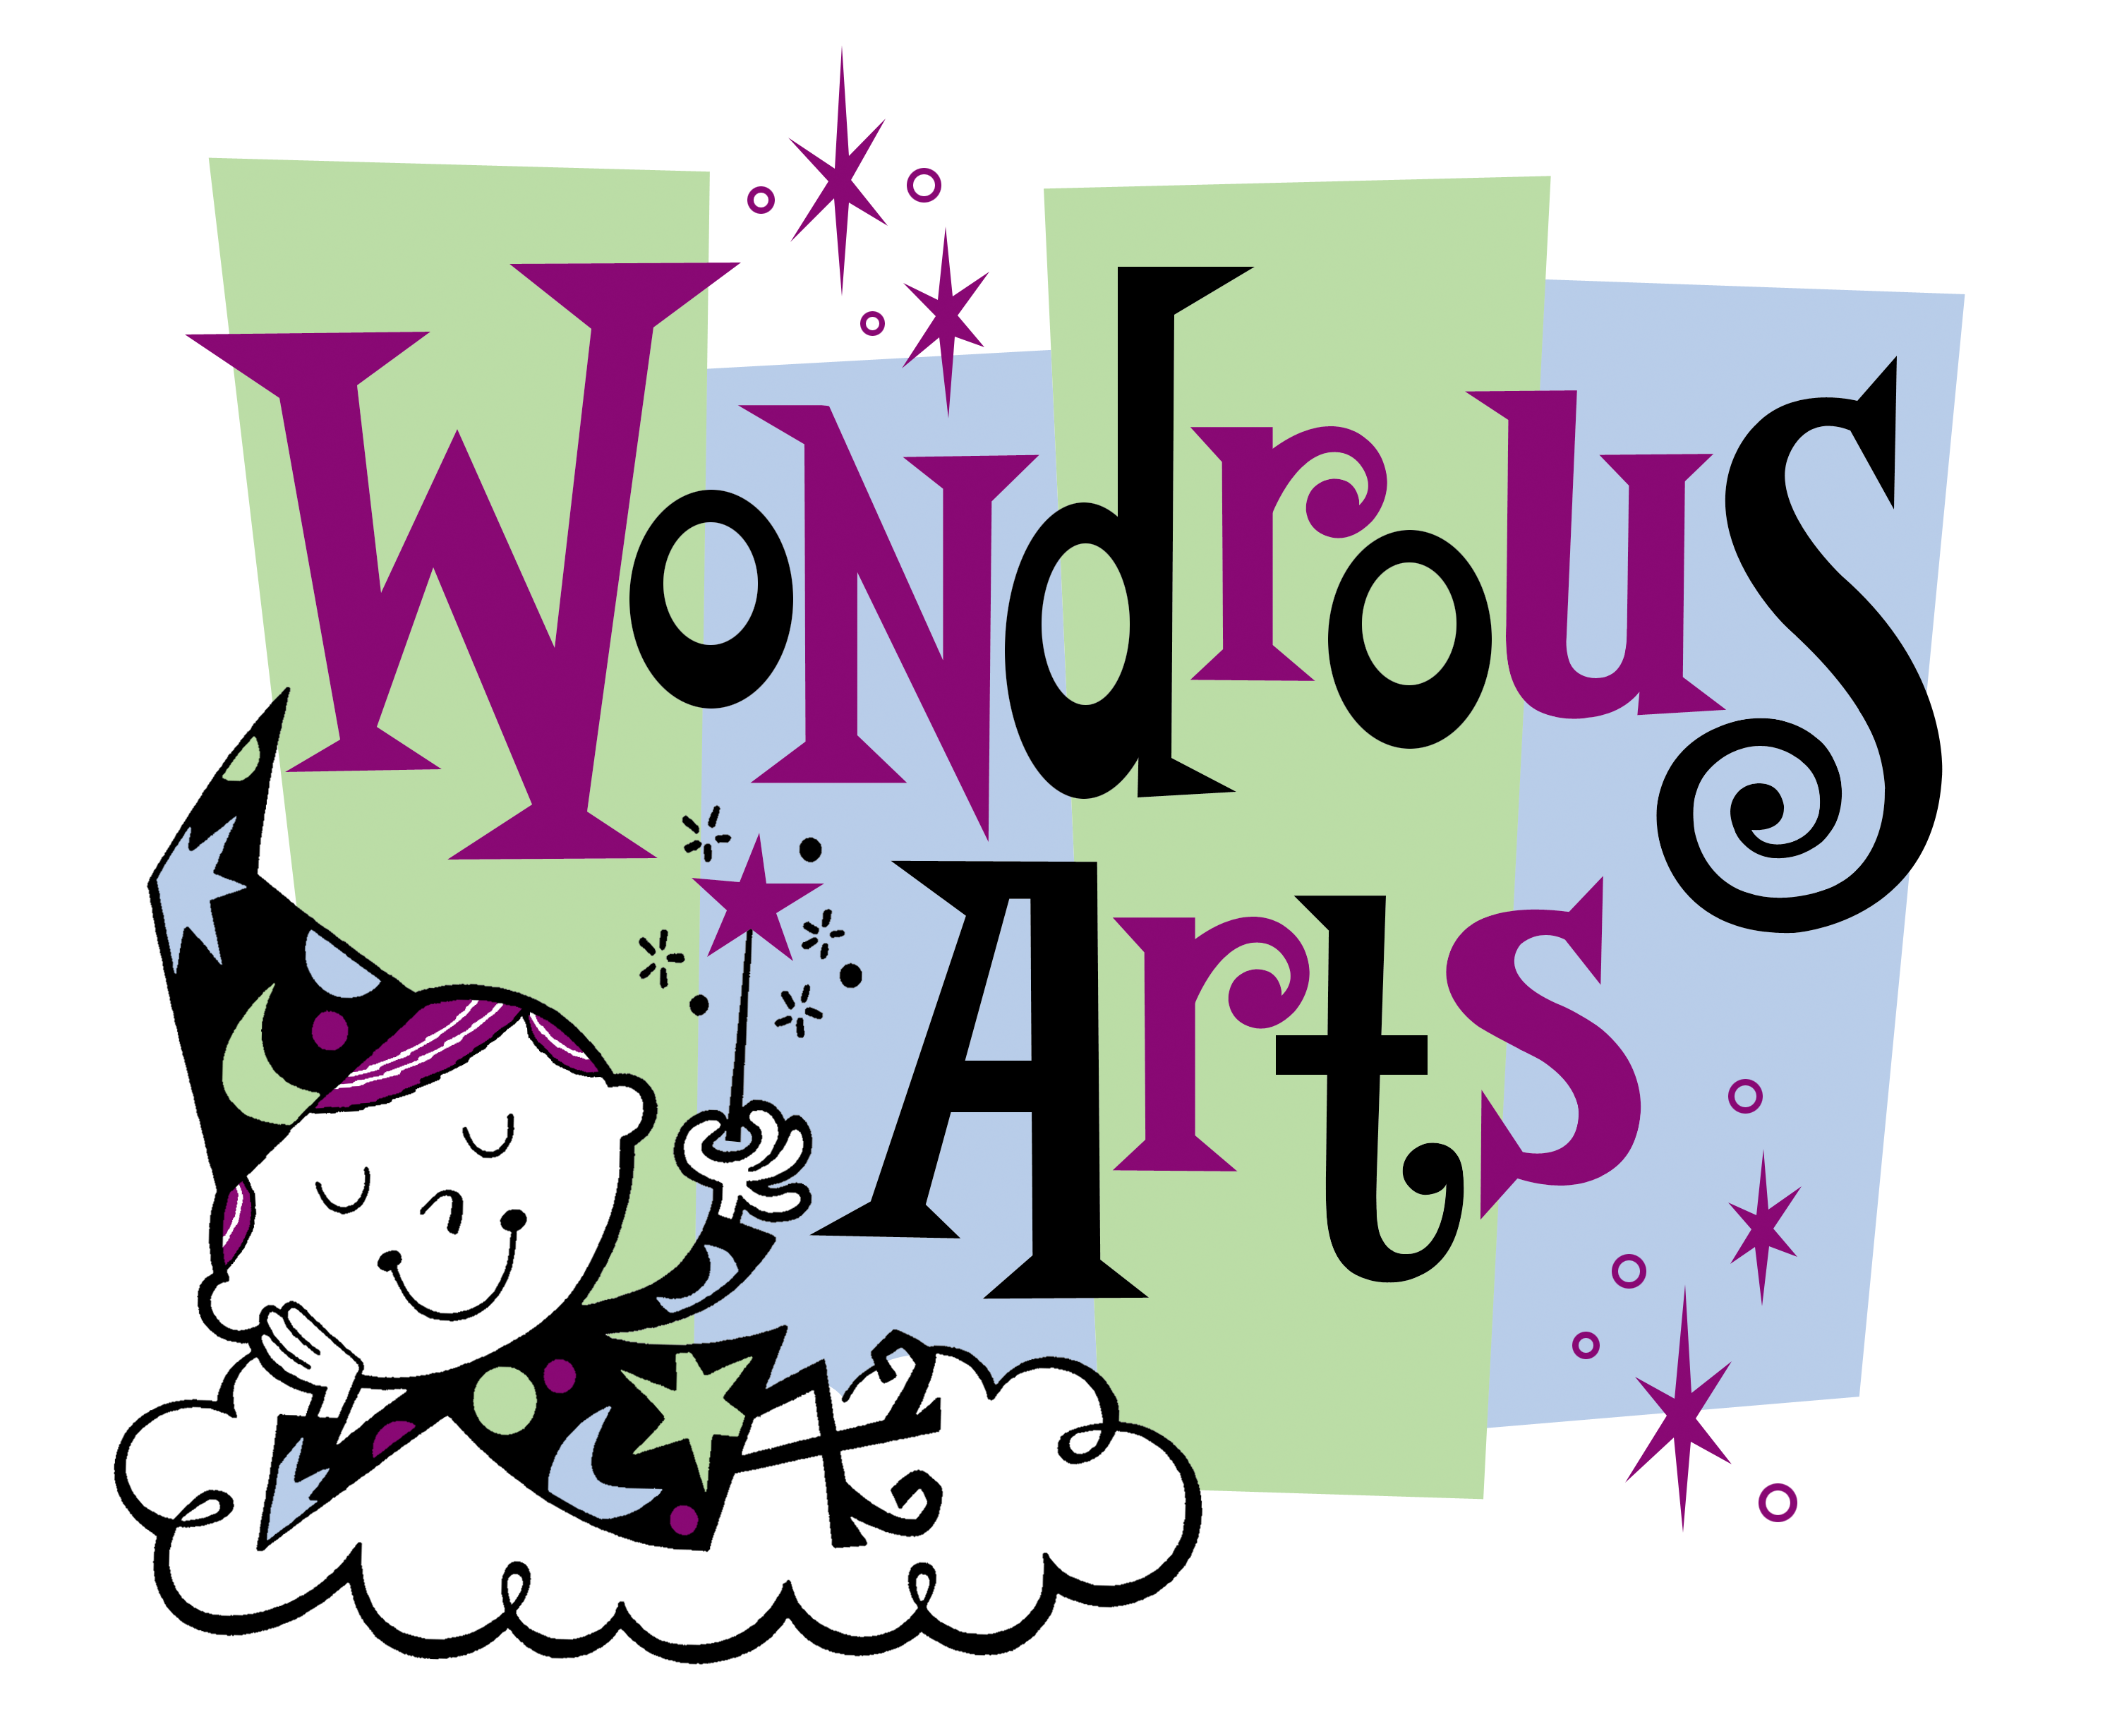 Wondrous Arts